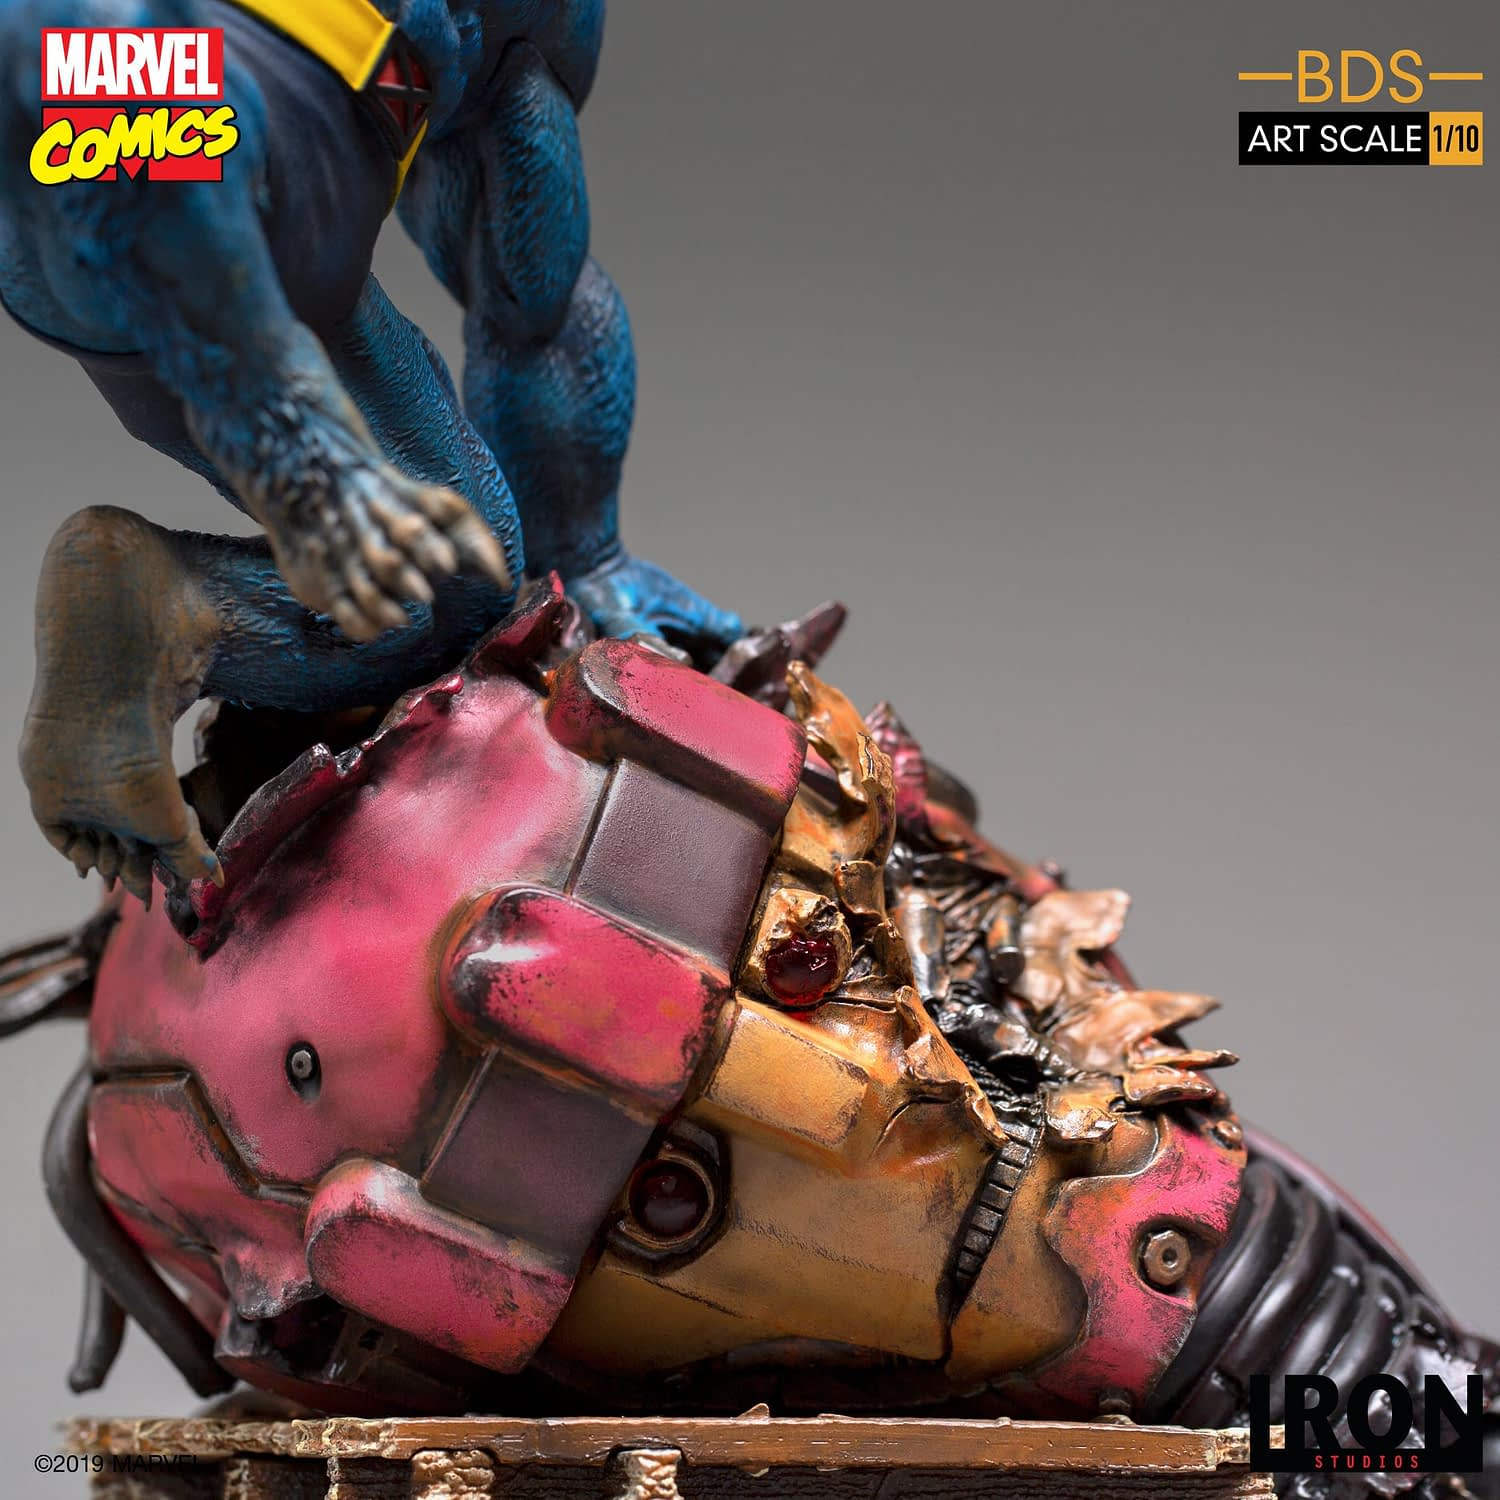 X-Men's Beast Holds His Own in Single Release Statue from Iron Studios